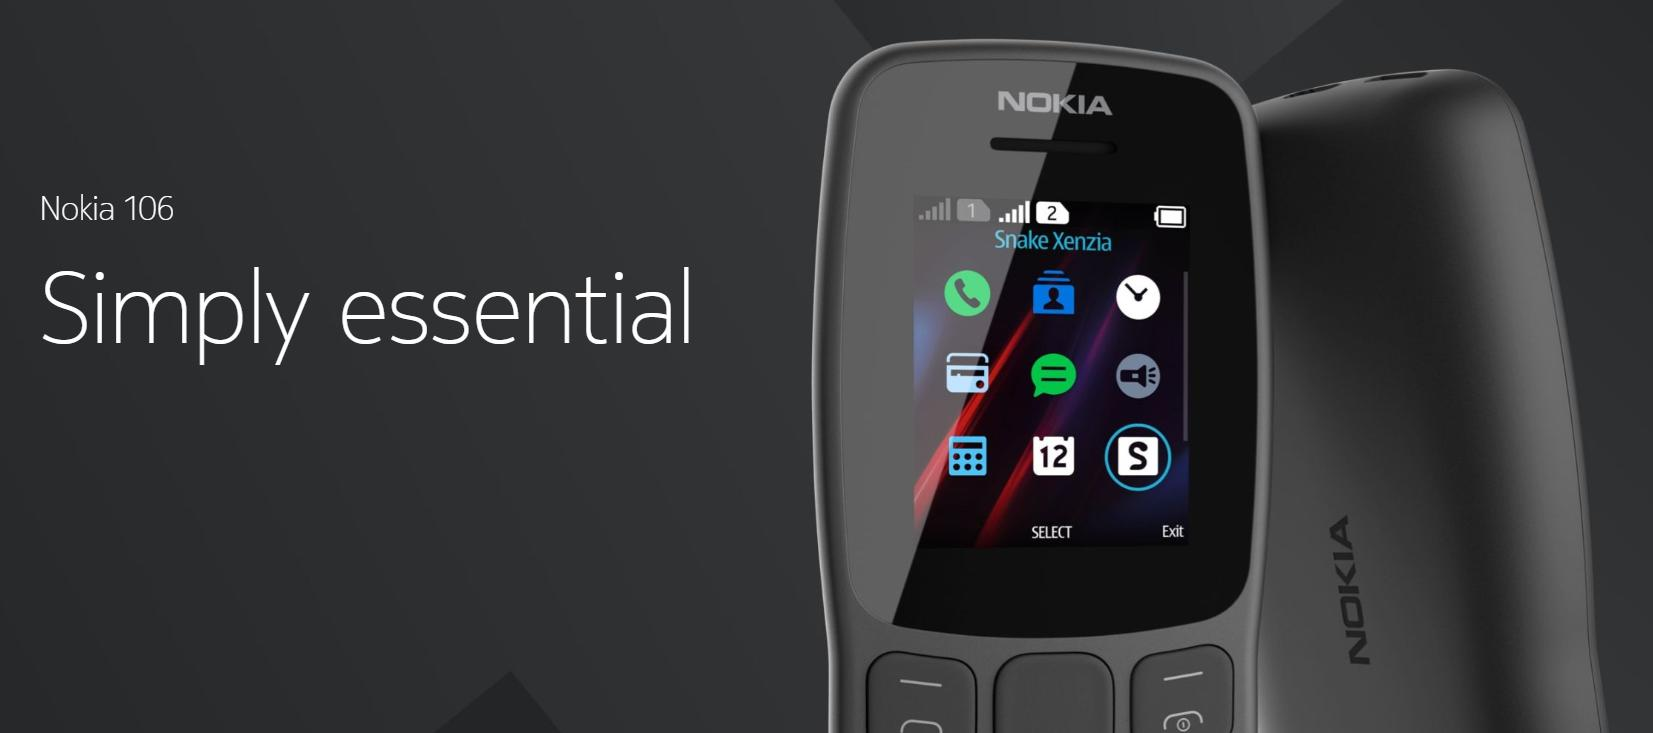 Nokia-106-featured.png (1653×733)